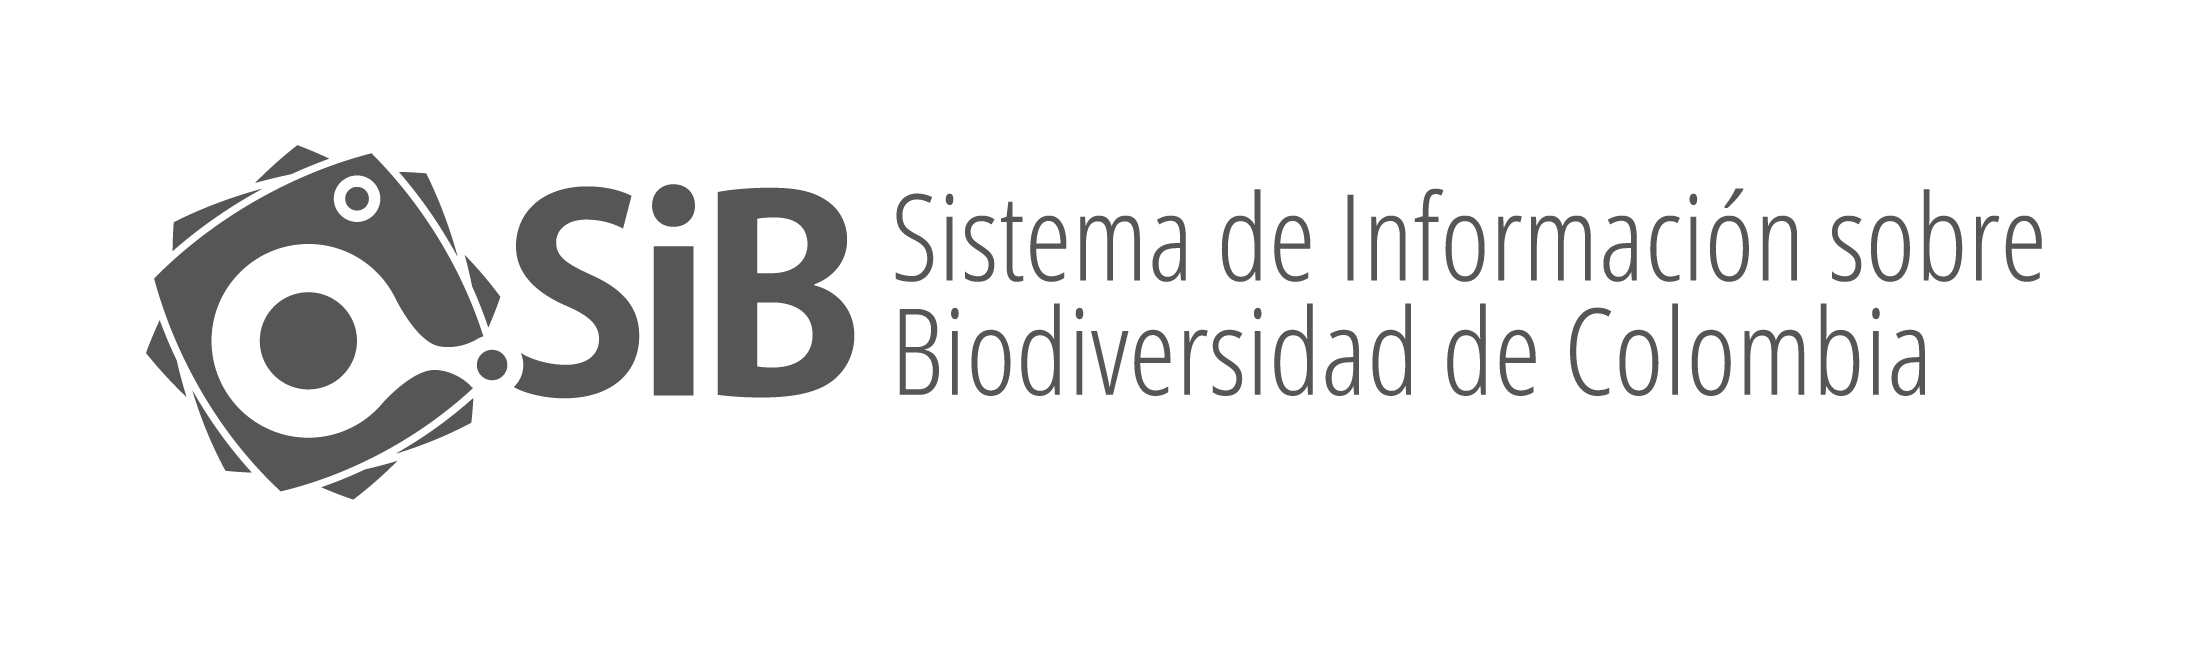 sib-colombia-17